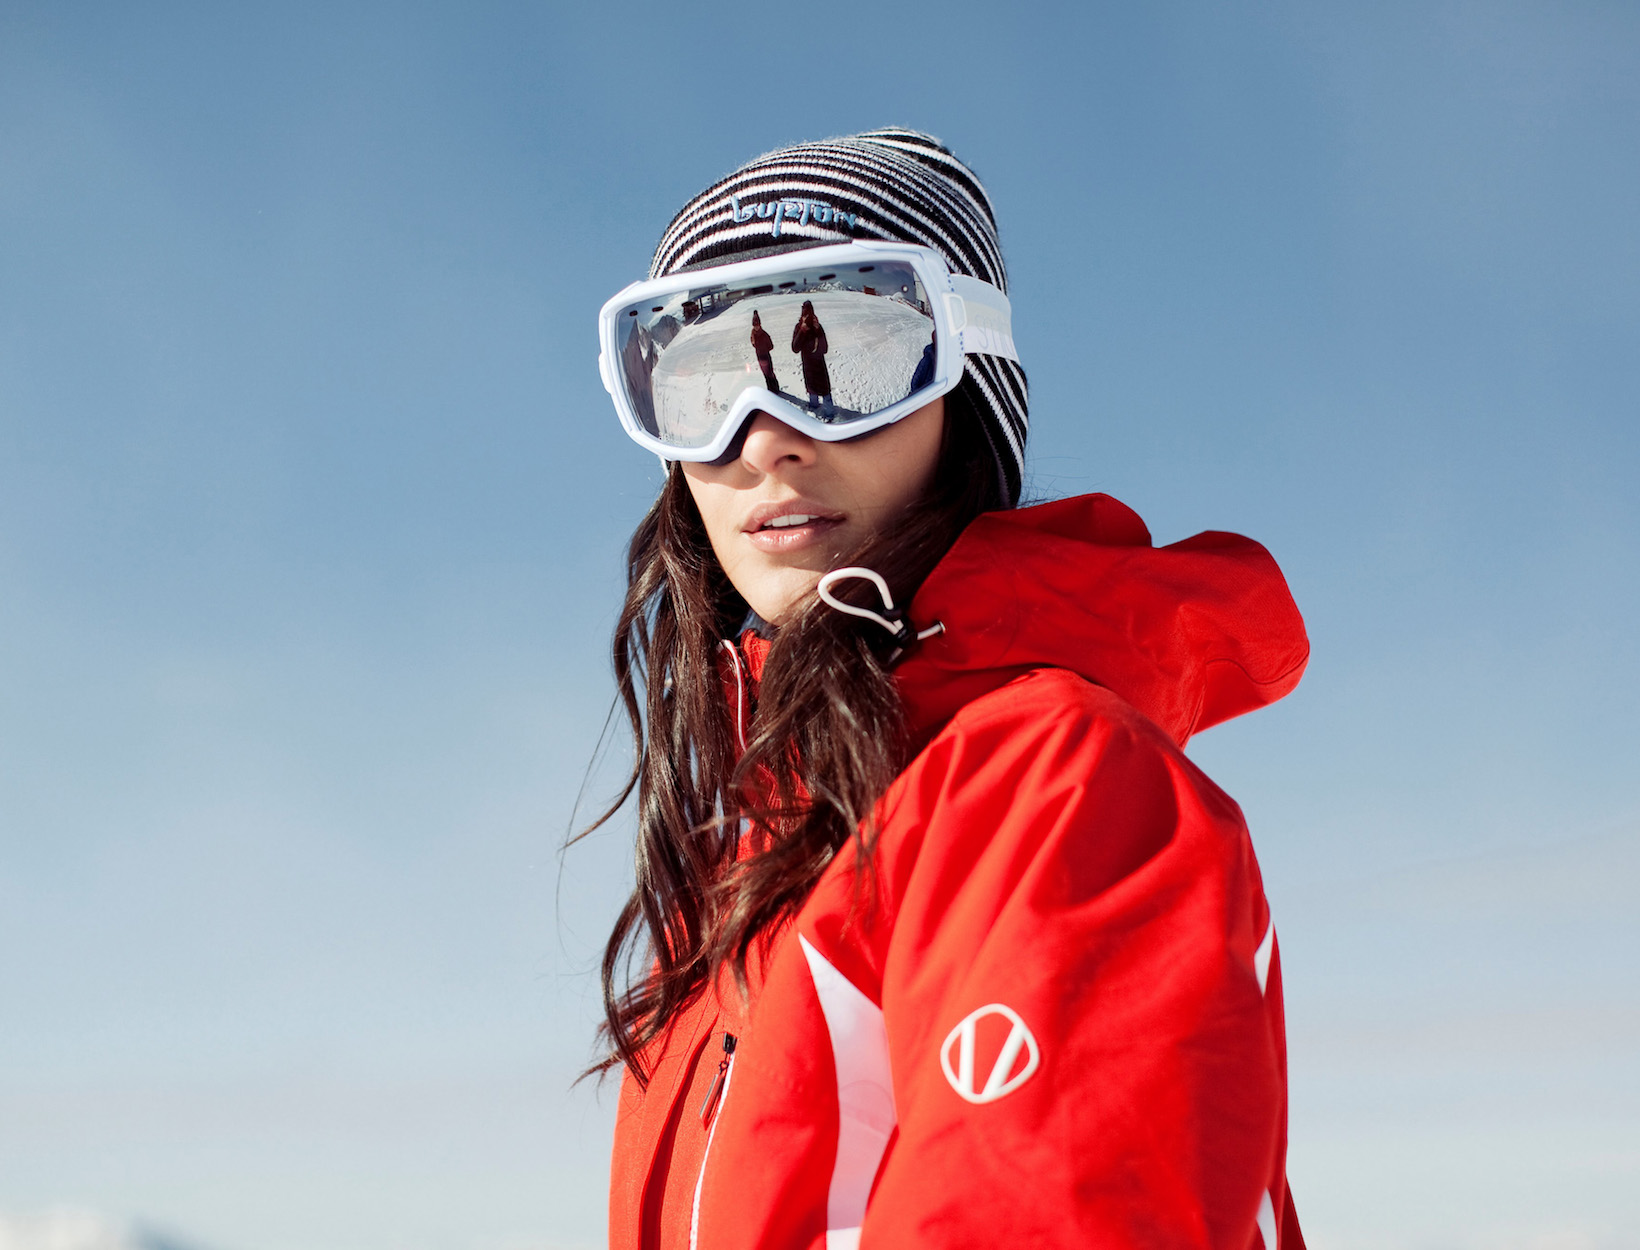 Godfrey's Guide: Skincare for Skiers, Snowboarders, Rock Climbers, and Frequent Fliers